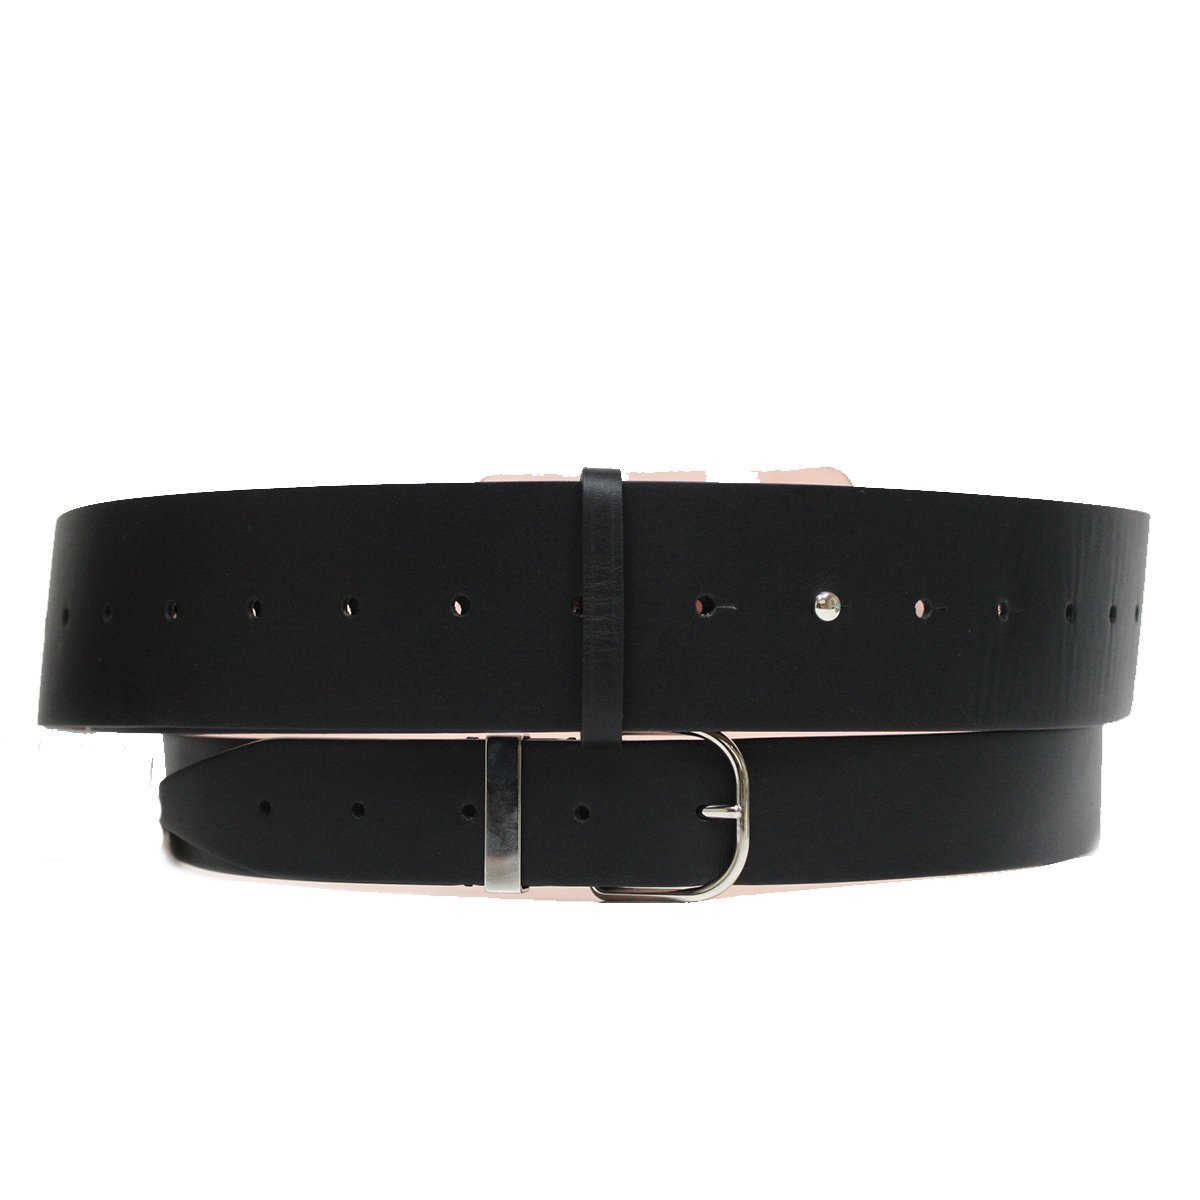 Balenciaga Buckle Wide Double Leather Waist Belt 311916 Size 80 cm / 32 in by Balenciaga